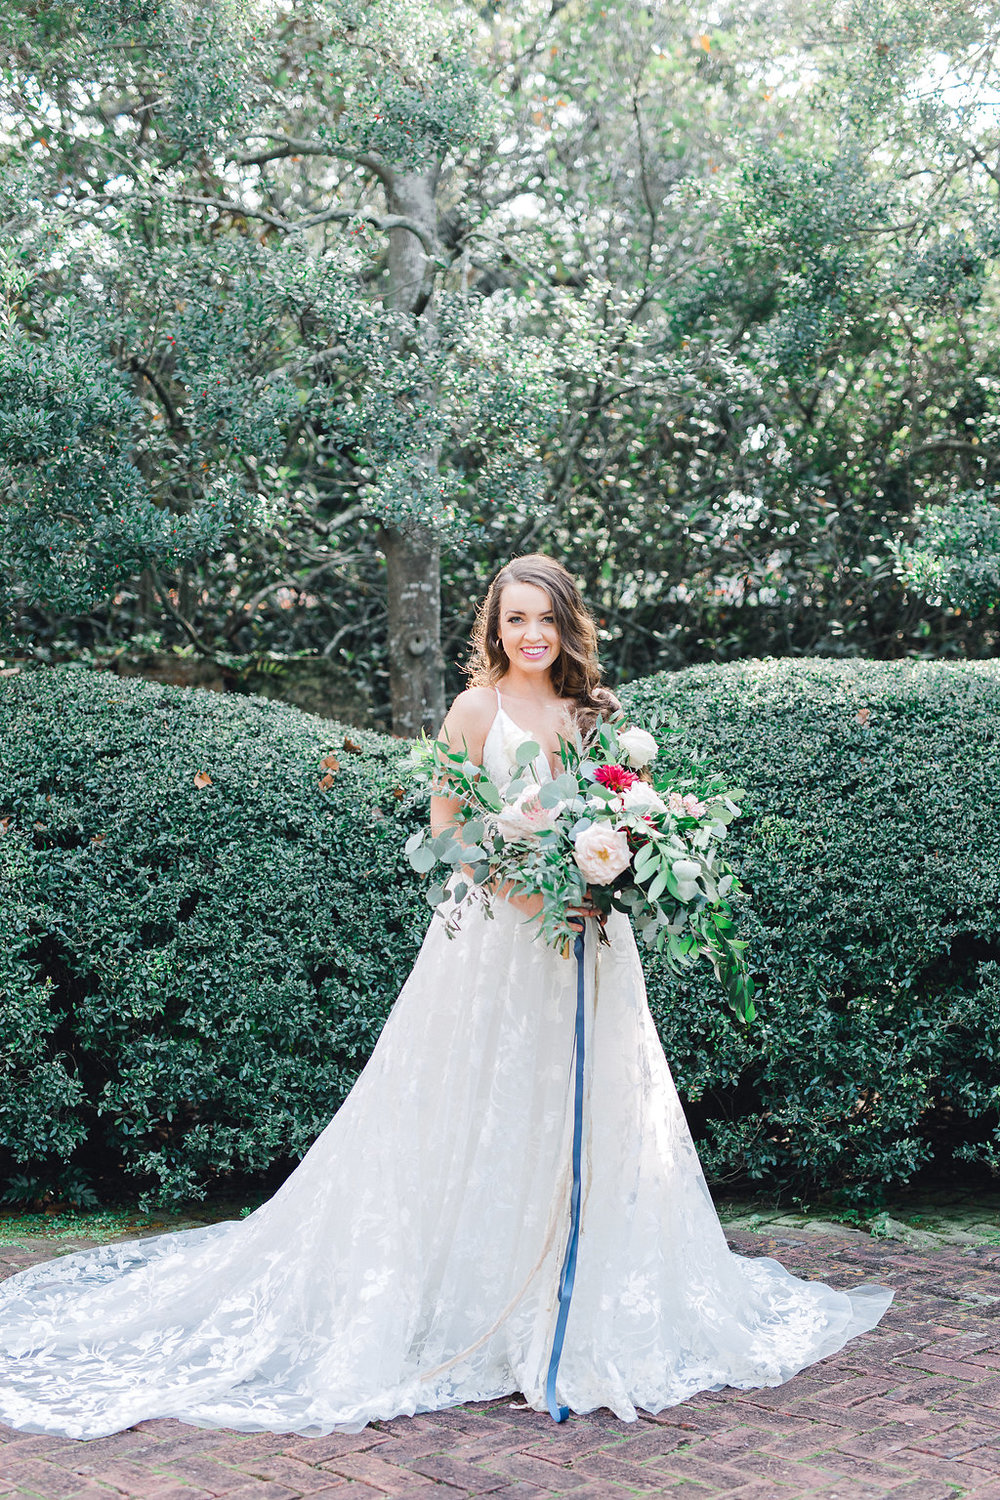 ships-of-the-sea-ivory-and-beau-savannah-bridal-shop-savannah-wedding-dresses-blush-by-hayley-paige-fleur-de-lis-floral-lace-wedding-dress-savannah-florist-savannah-wedding-flowers.JPG